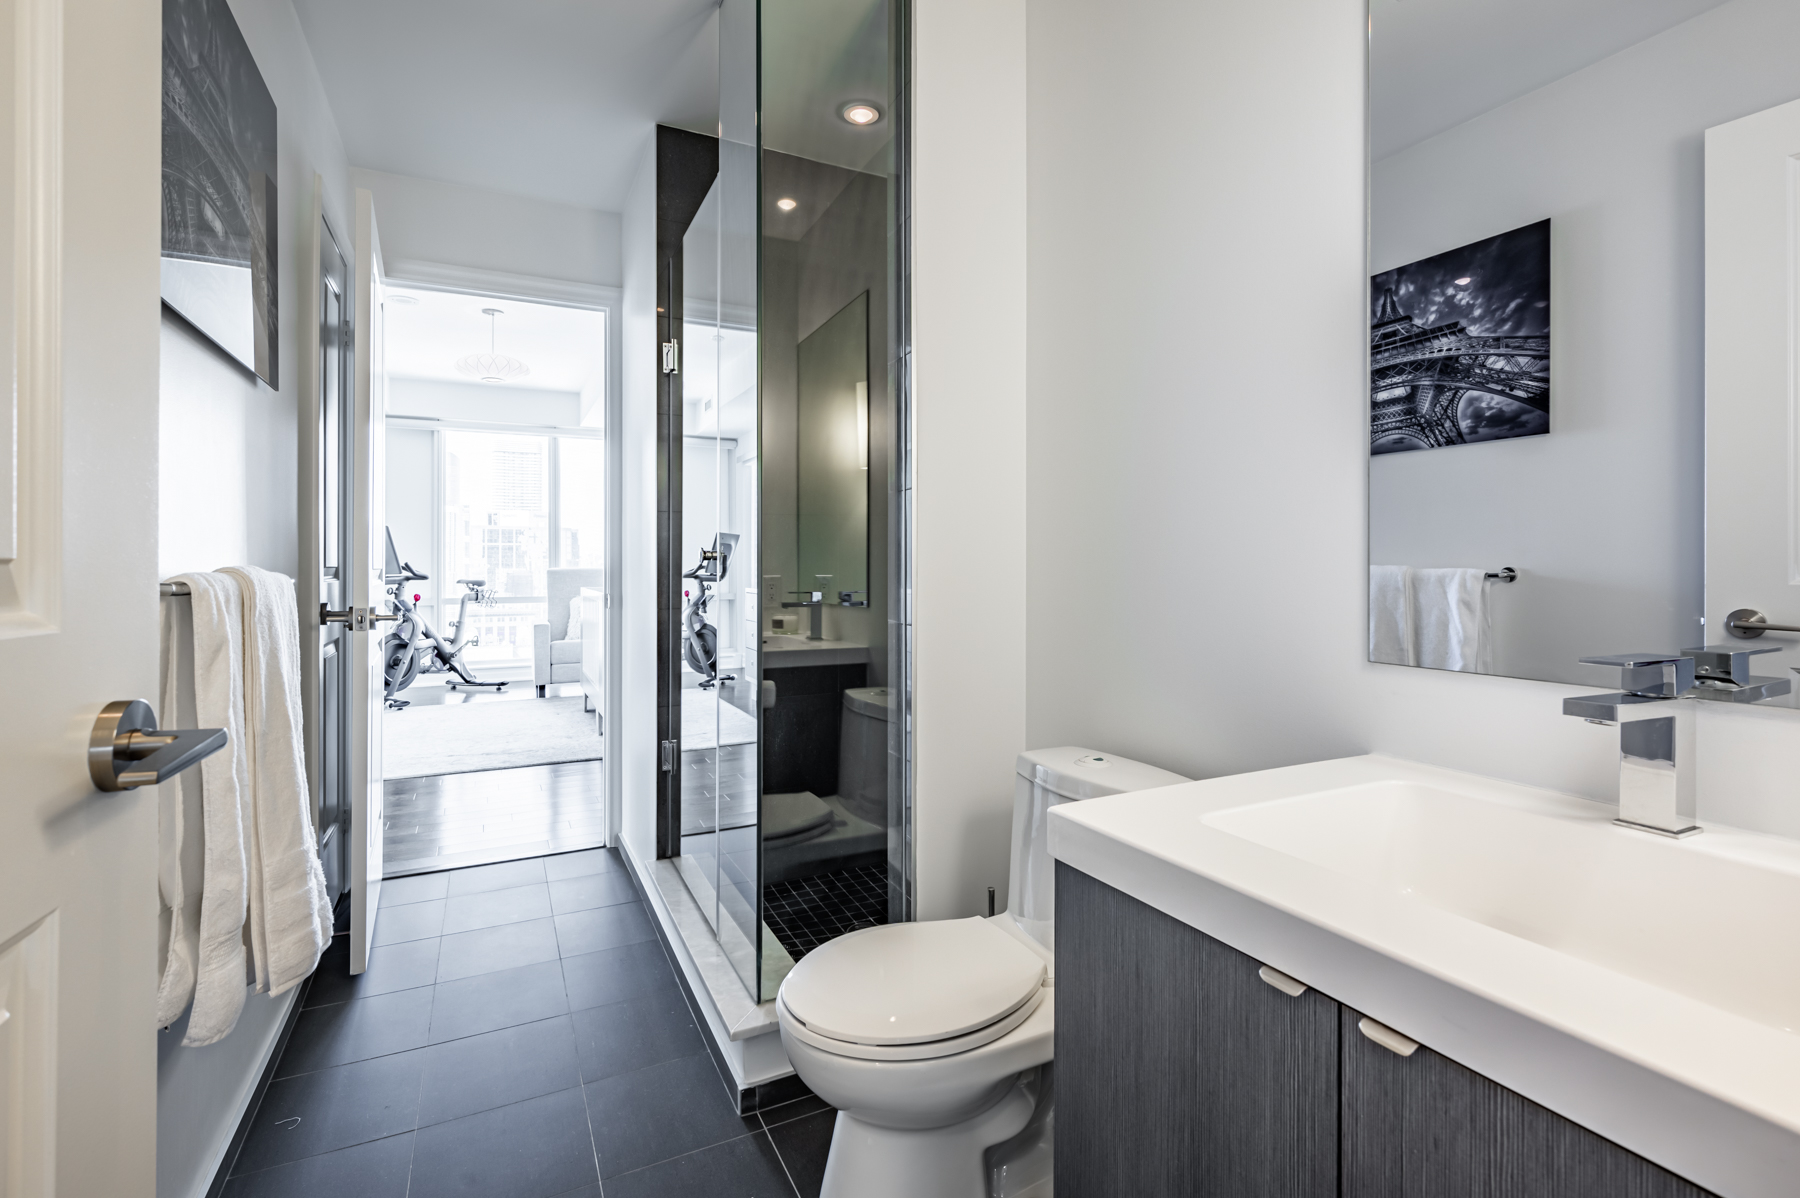 3-piece ensuite bath with dark tiles and glass shower.